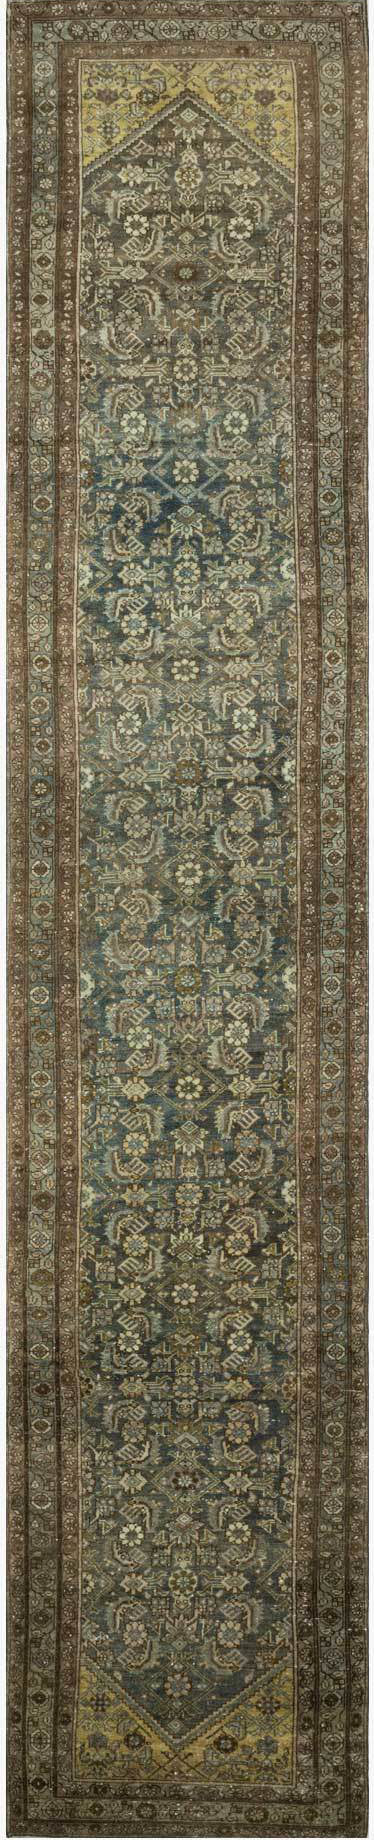 Loloi Turkish Hand Knots One of a Kind Navy/Mocha Area Rug main image